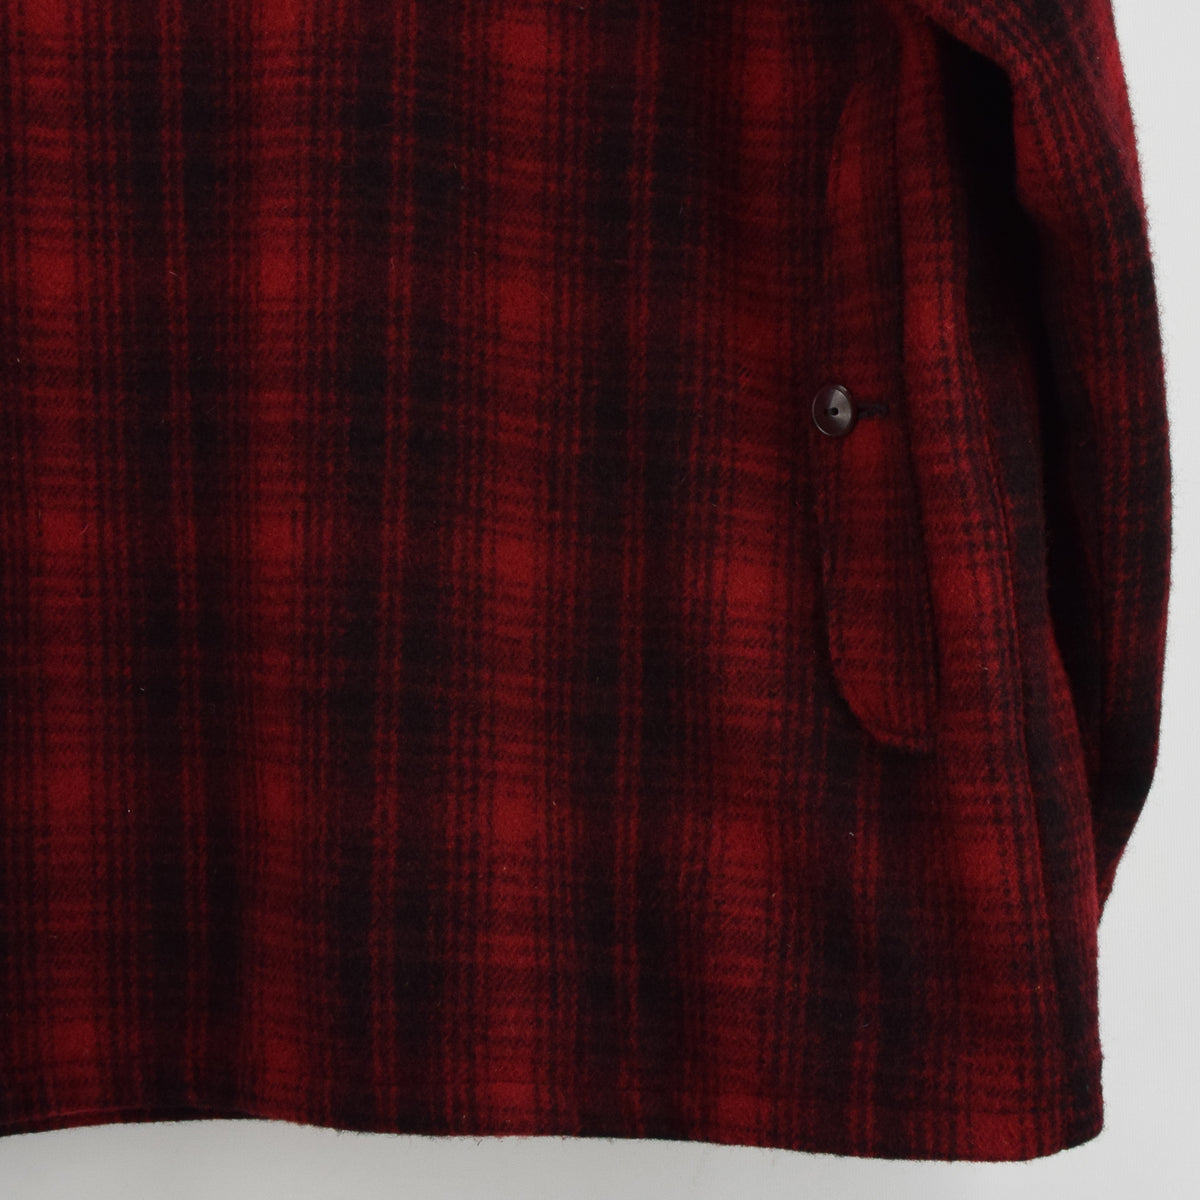 Vintage 70s Woolrich Buffalo Plaid Mackinaw Hunting Cruiser Jacket Made in USA L back hem